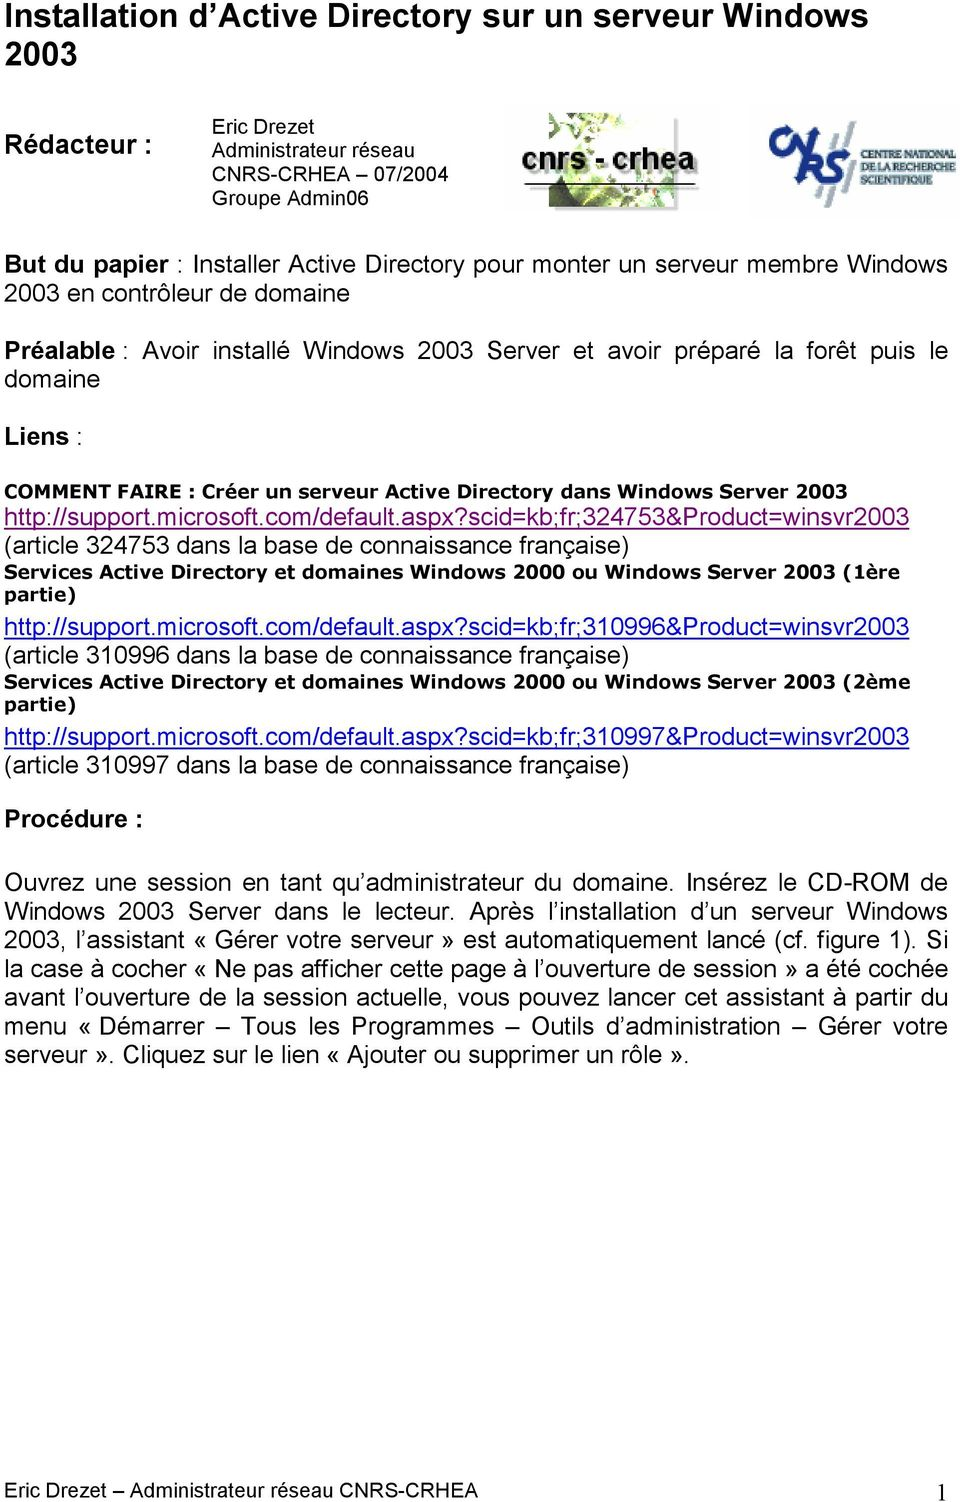 dans Windows Server 2003 http://support.microsoft.com/default.aspx?